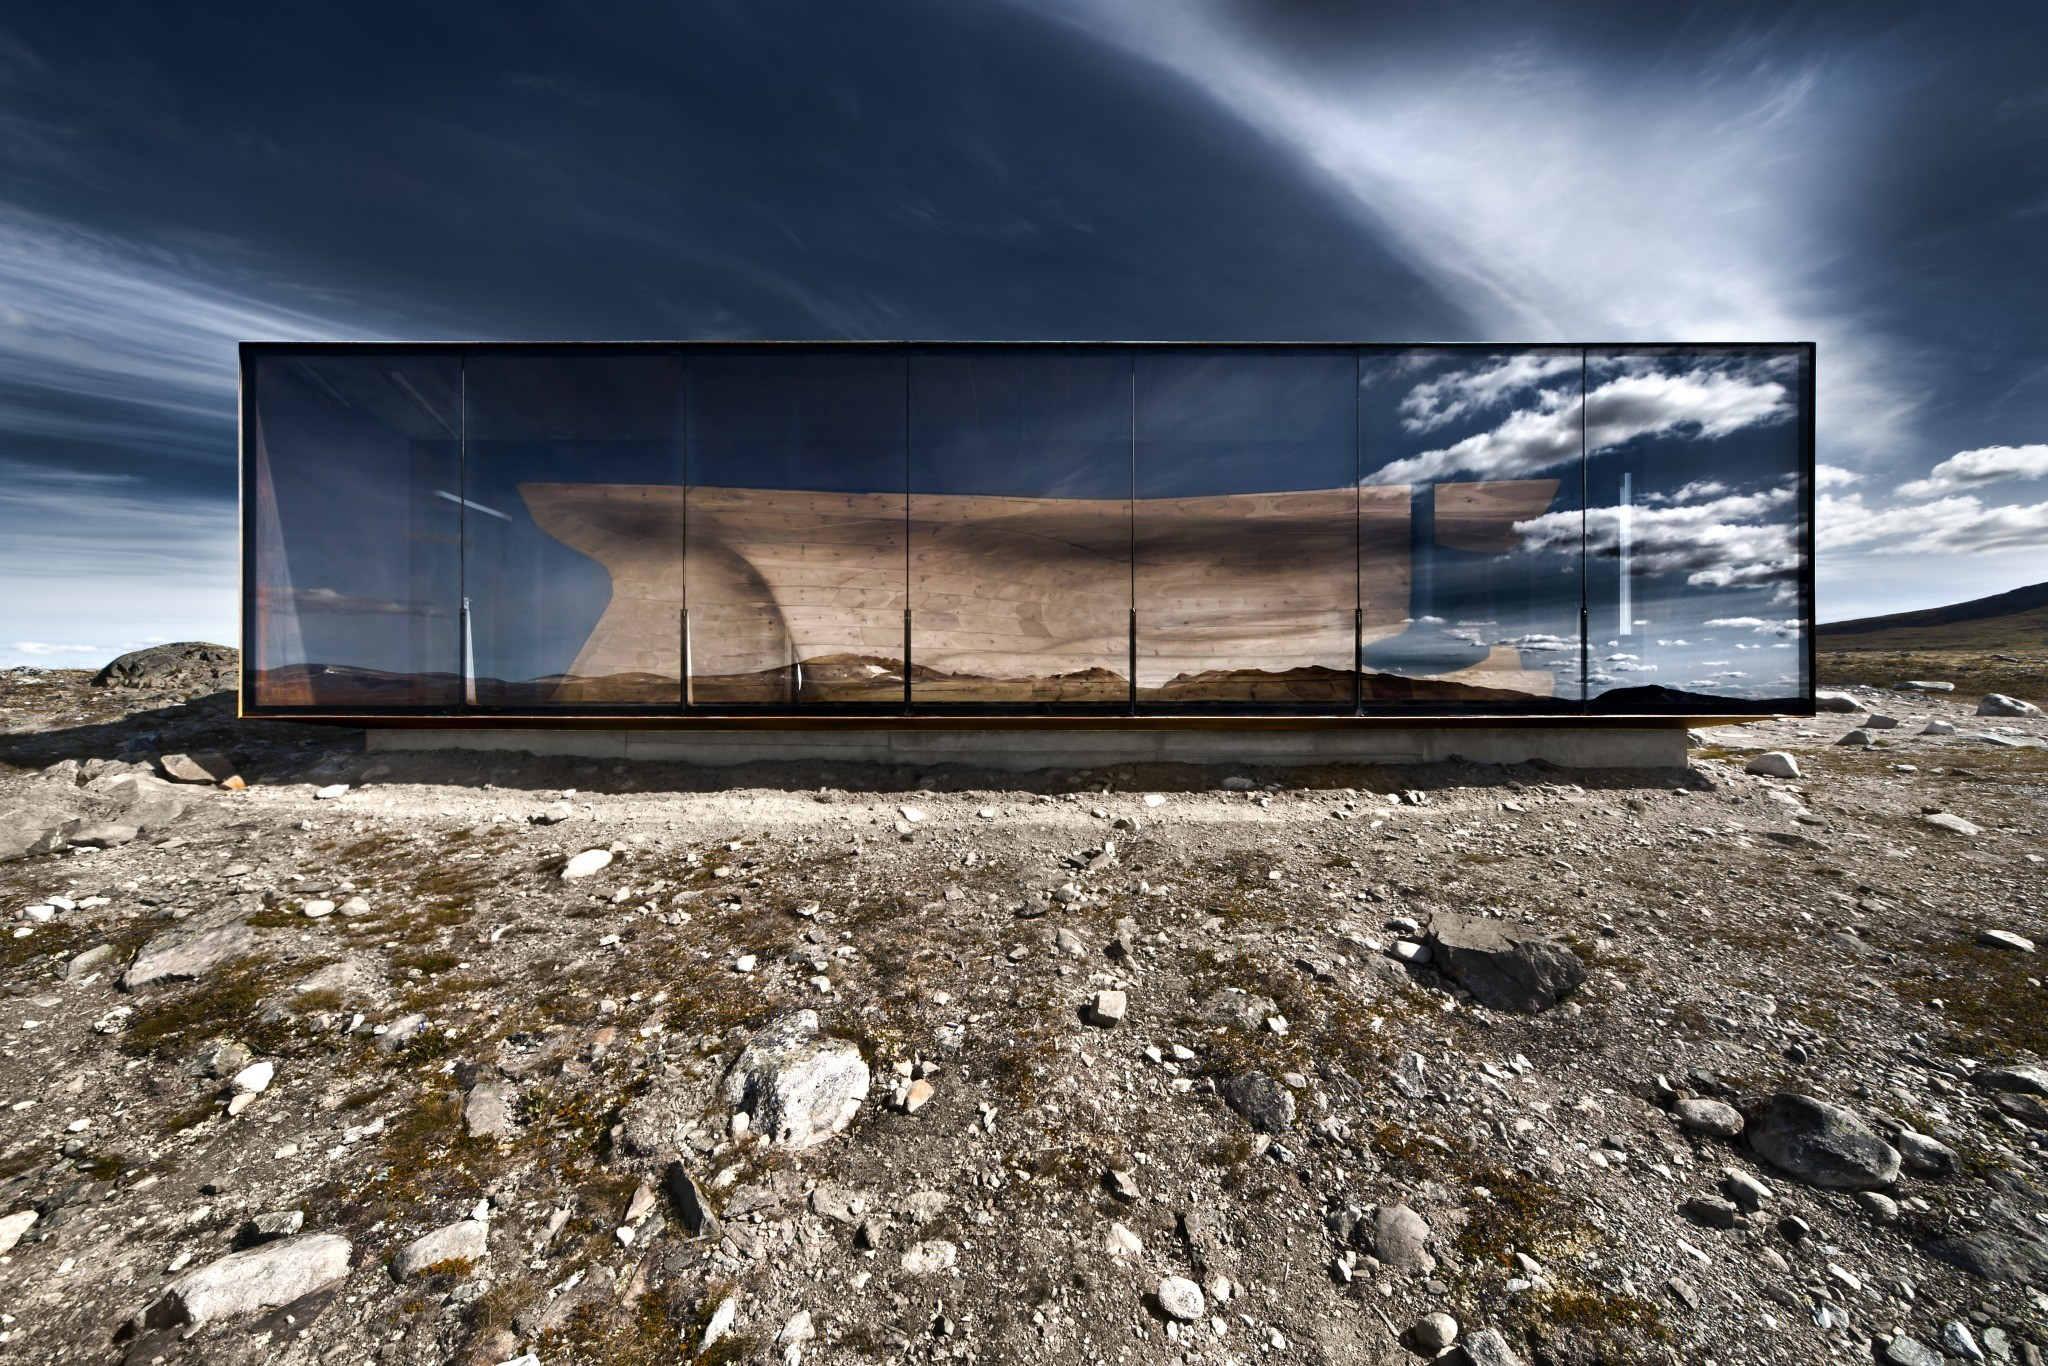 The 90 m2 building is open to the public and serves as an observation pavilion for the Wild Reindeer Foundation educational programmes.